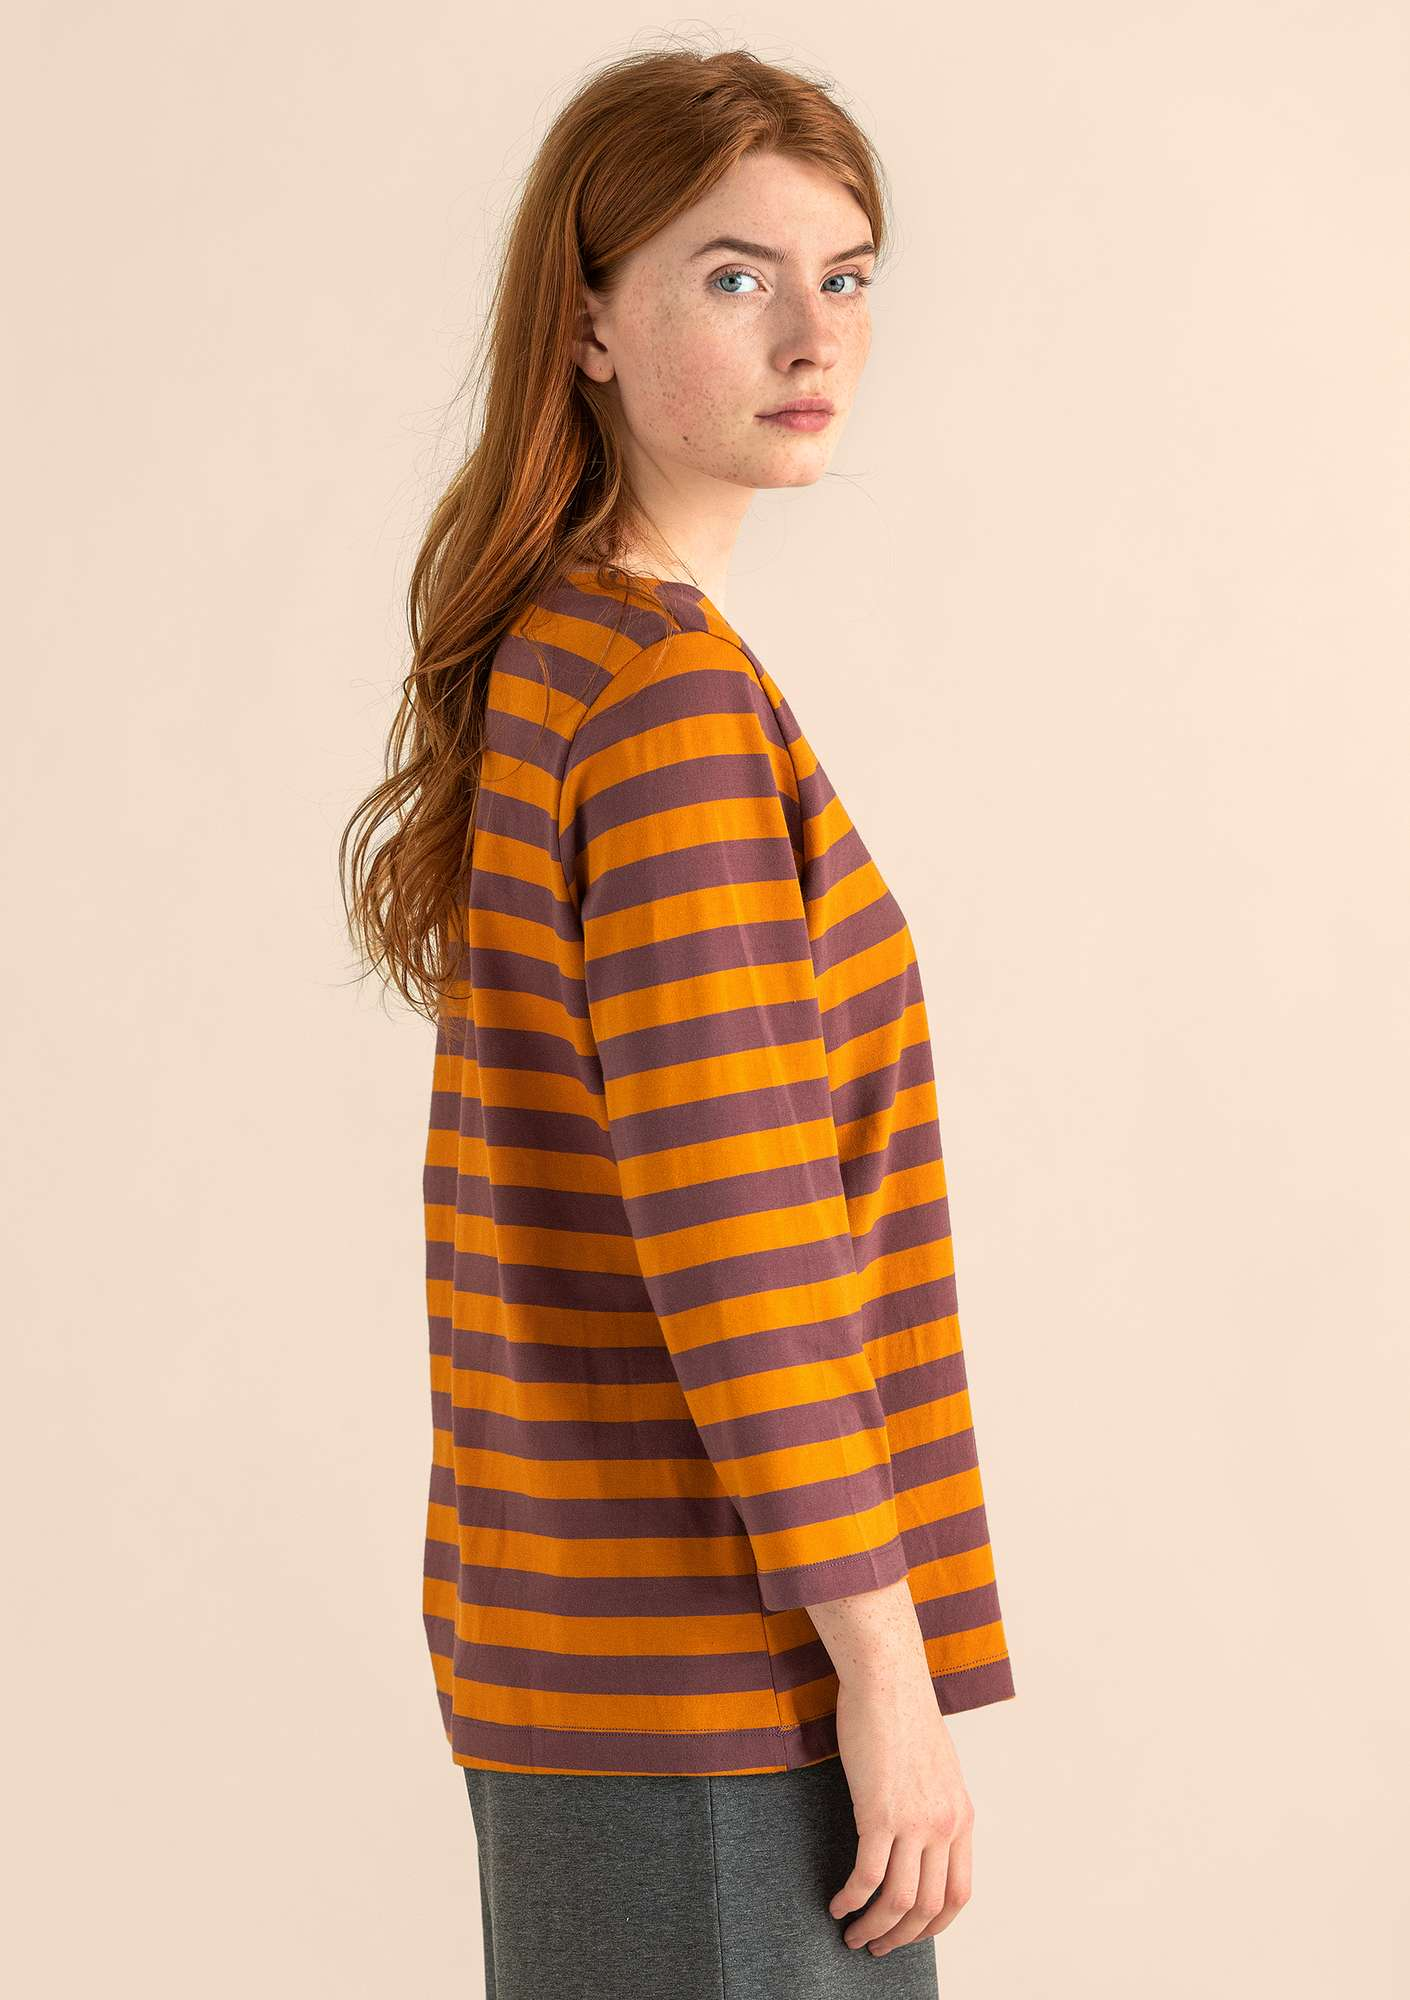 Block-striped top in eco-cotton mallow/mustard